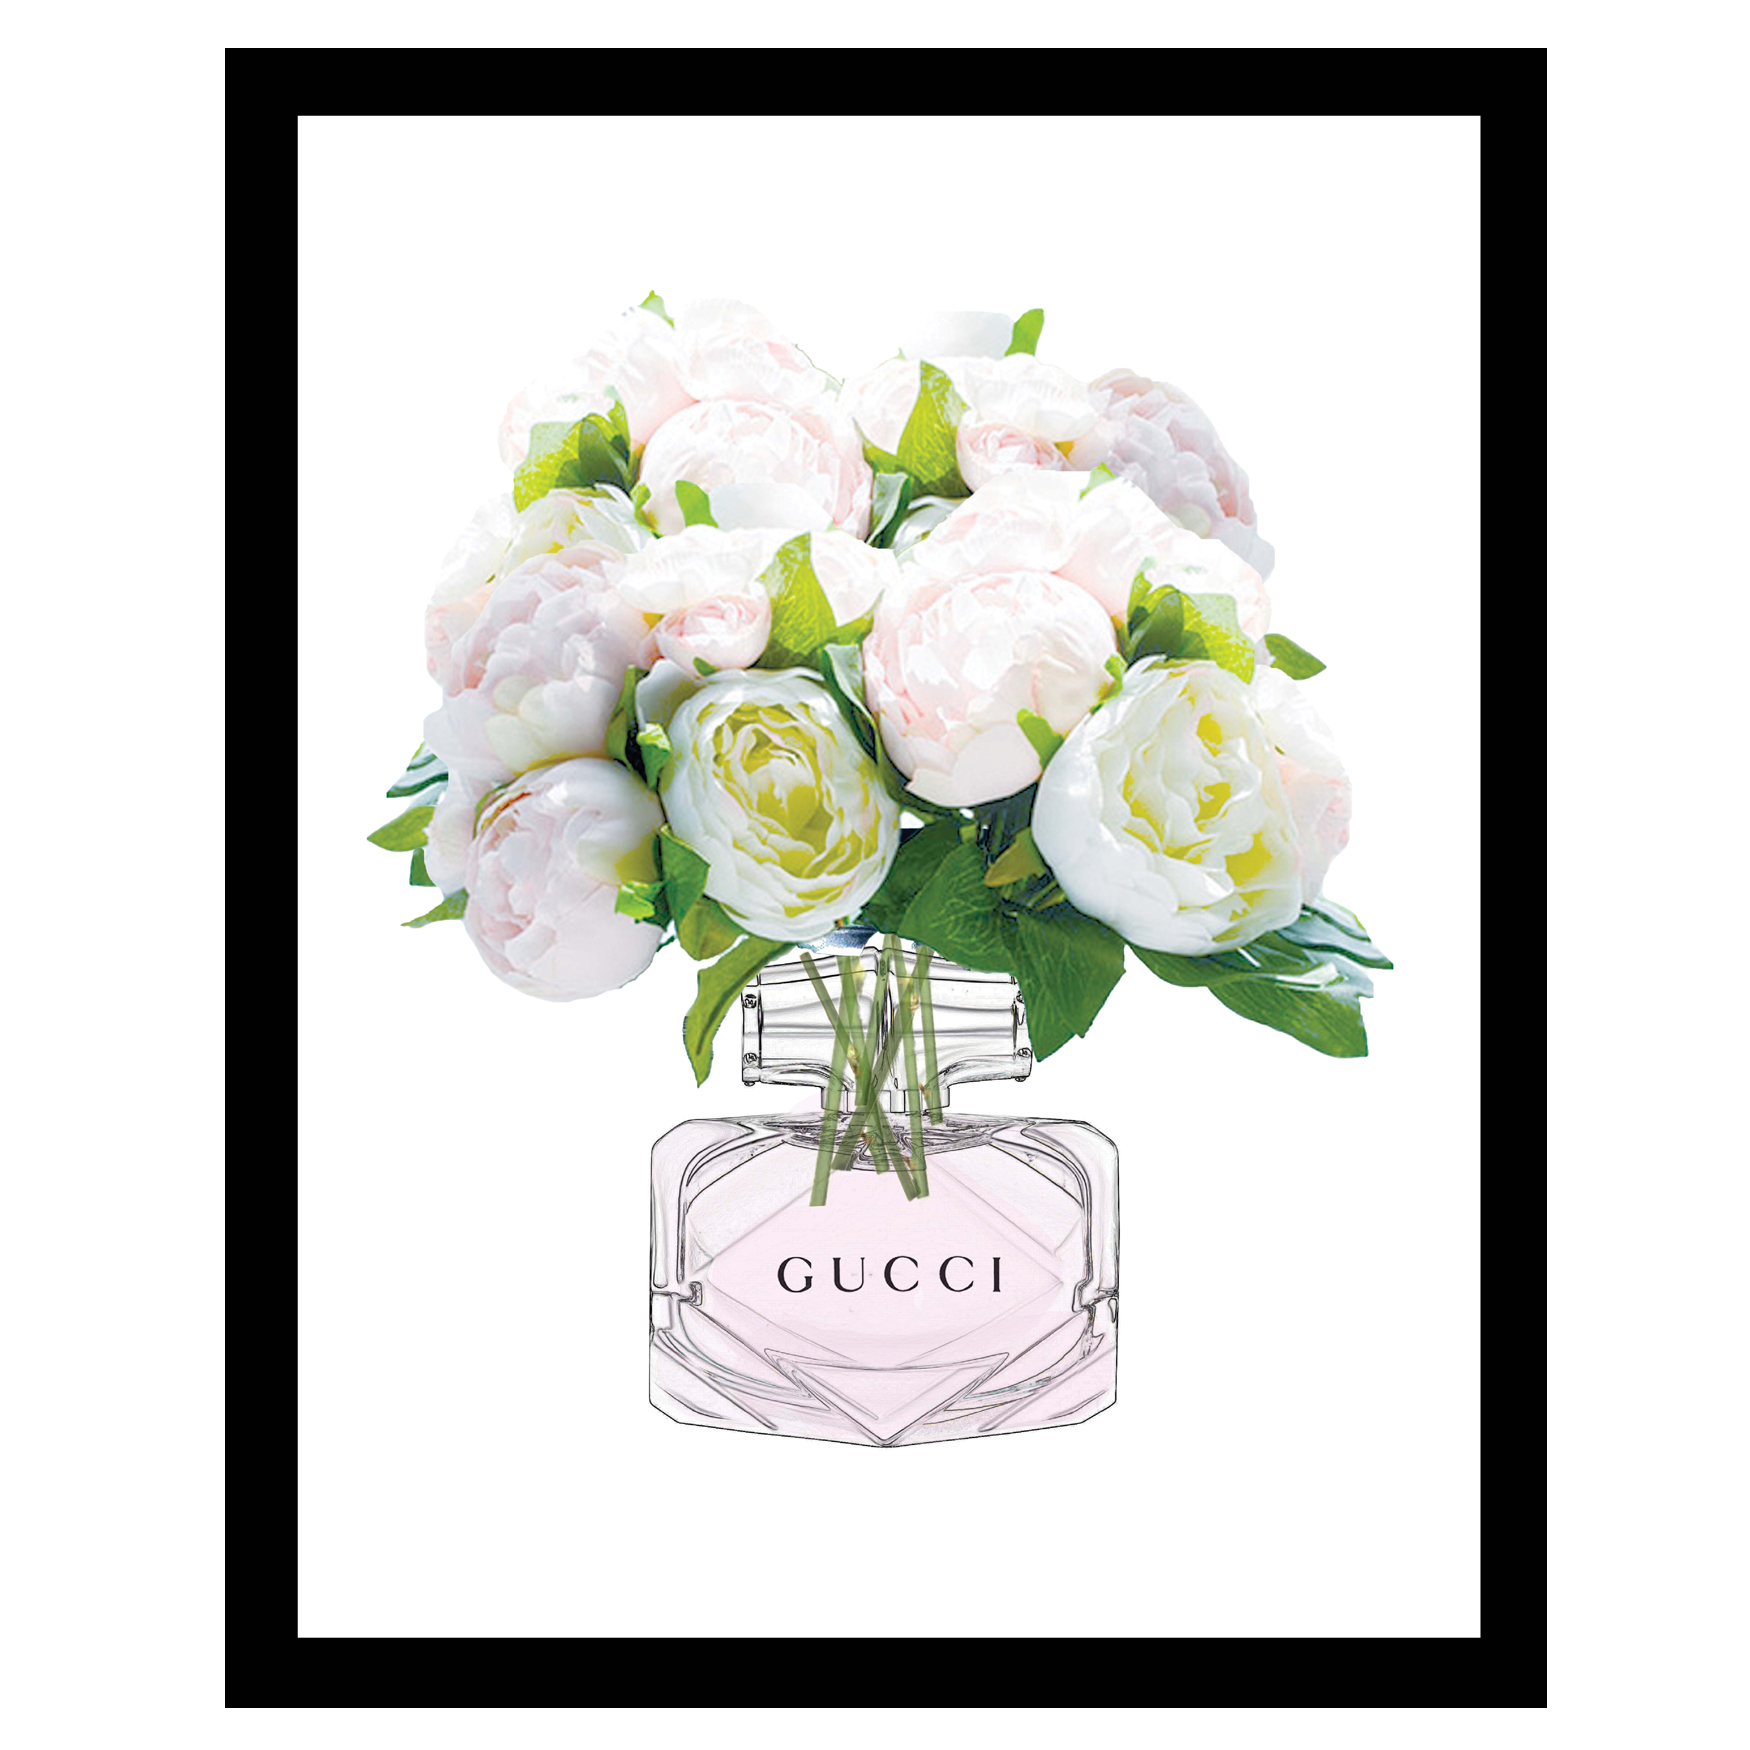 Gucci Perfume Bouquet - White / Green - 14x18 Framed Print, WHITE GREEN